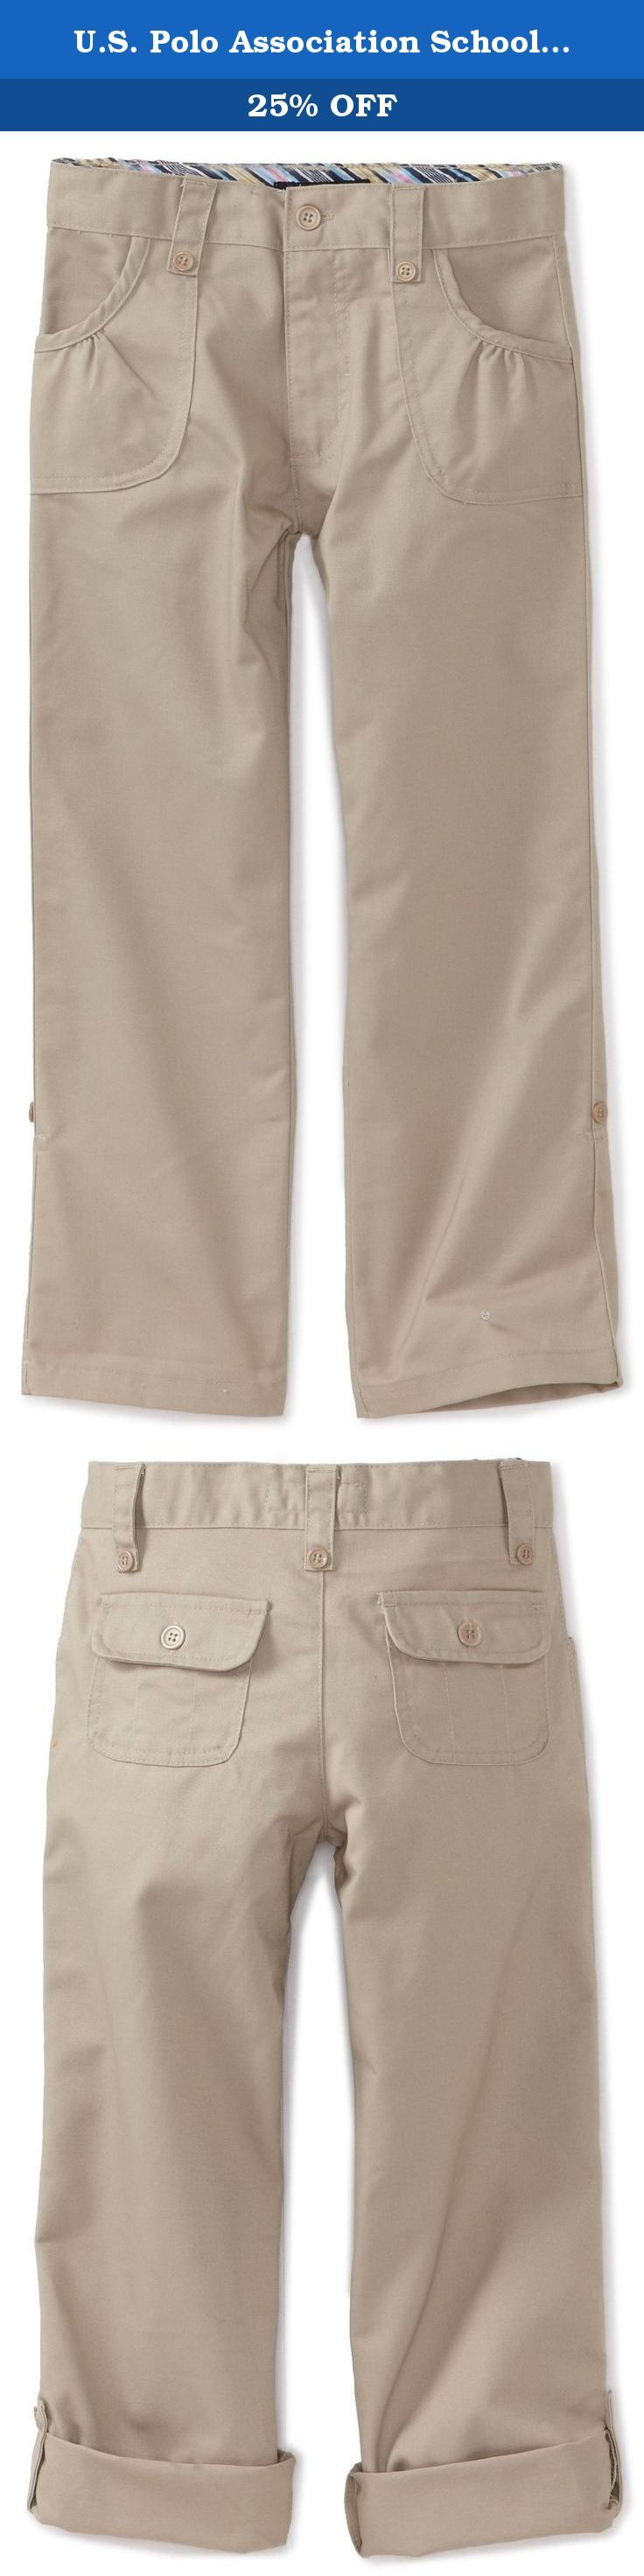 U.S. Polo Association School Uniform Big Girls' Twill Roll Up Pant, Khaki, 12. Gathered front pockets.